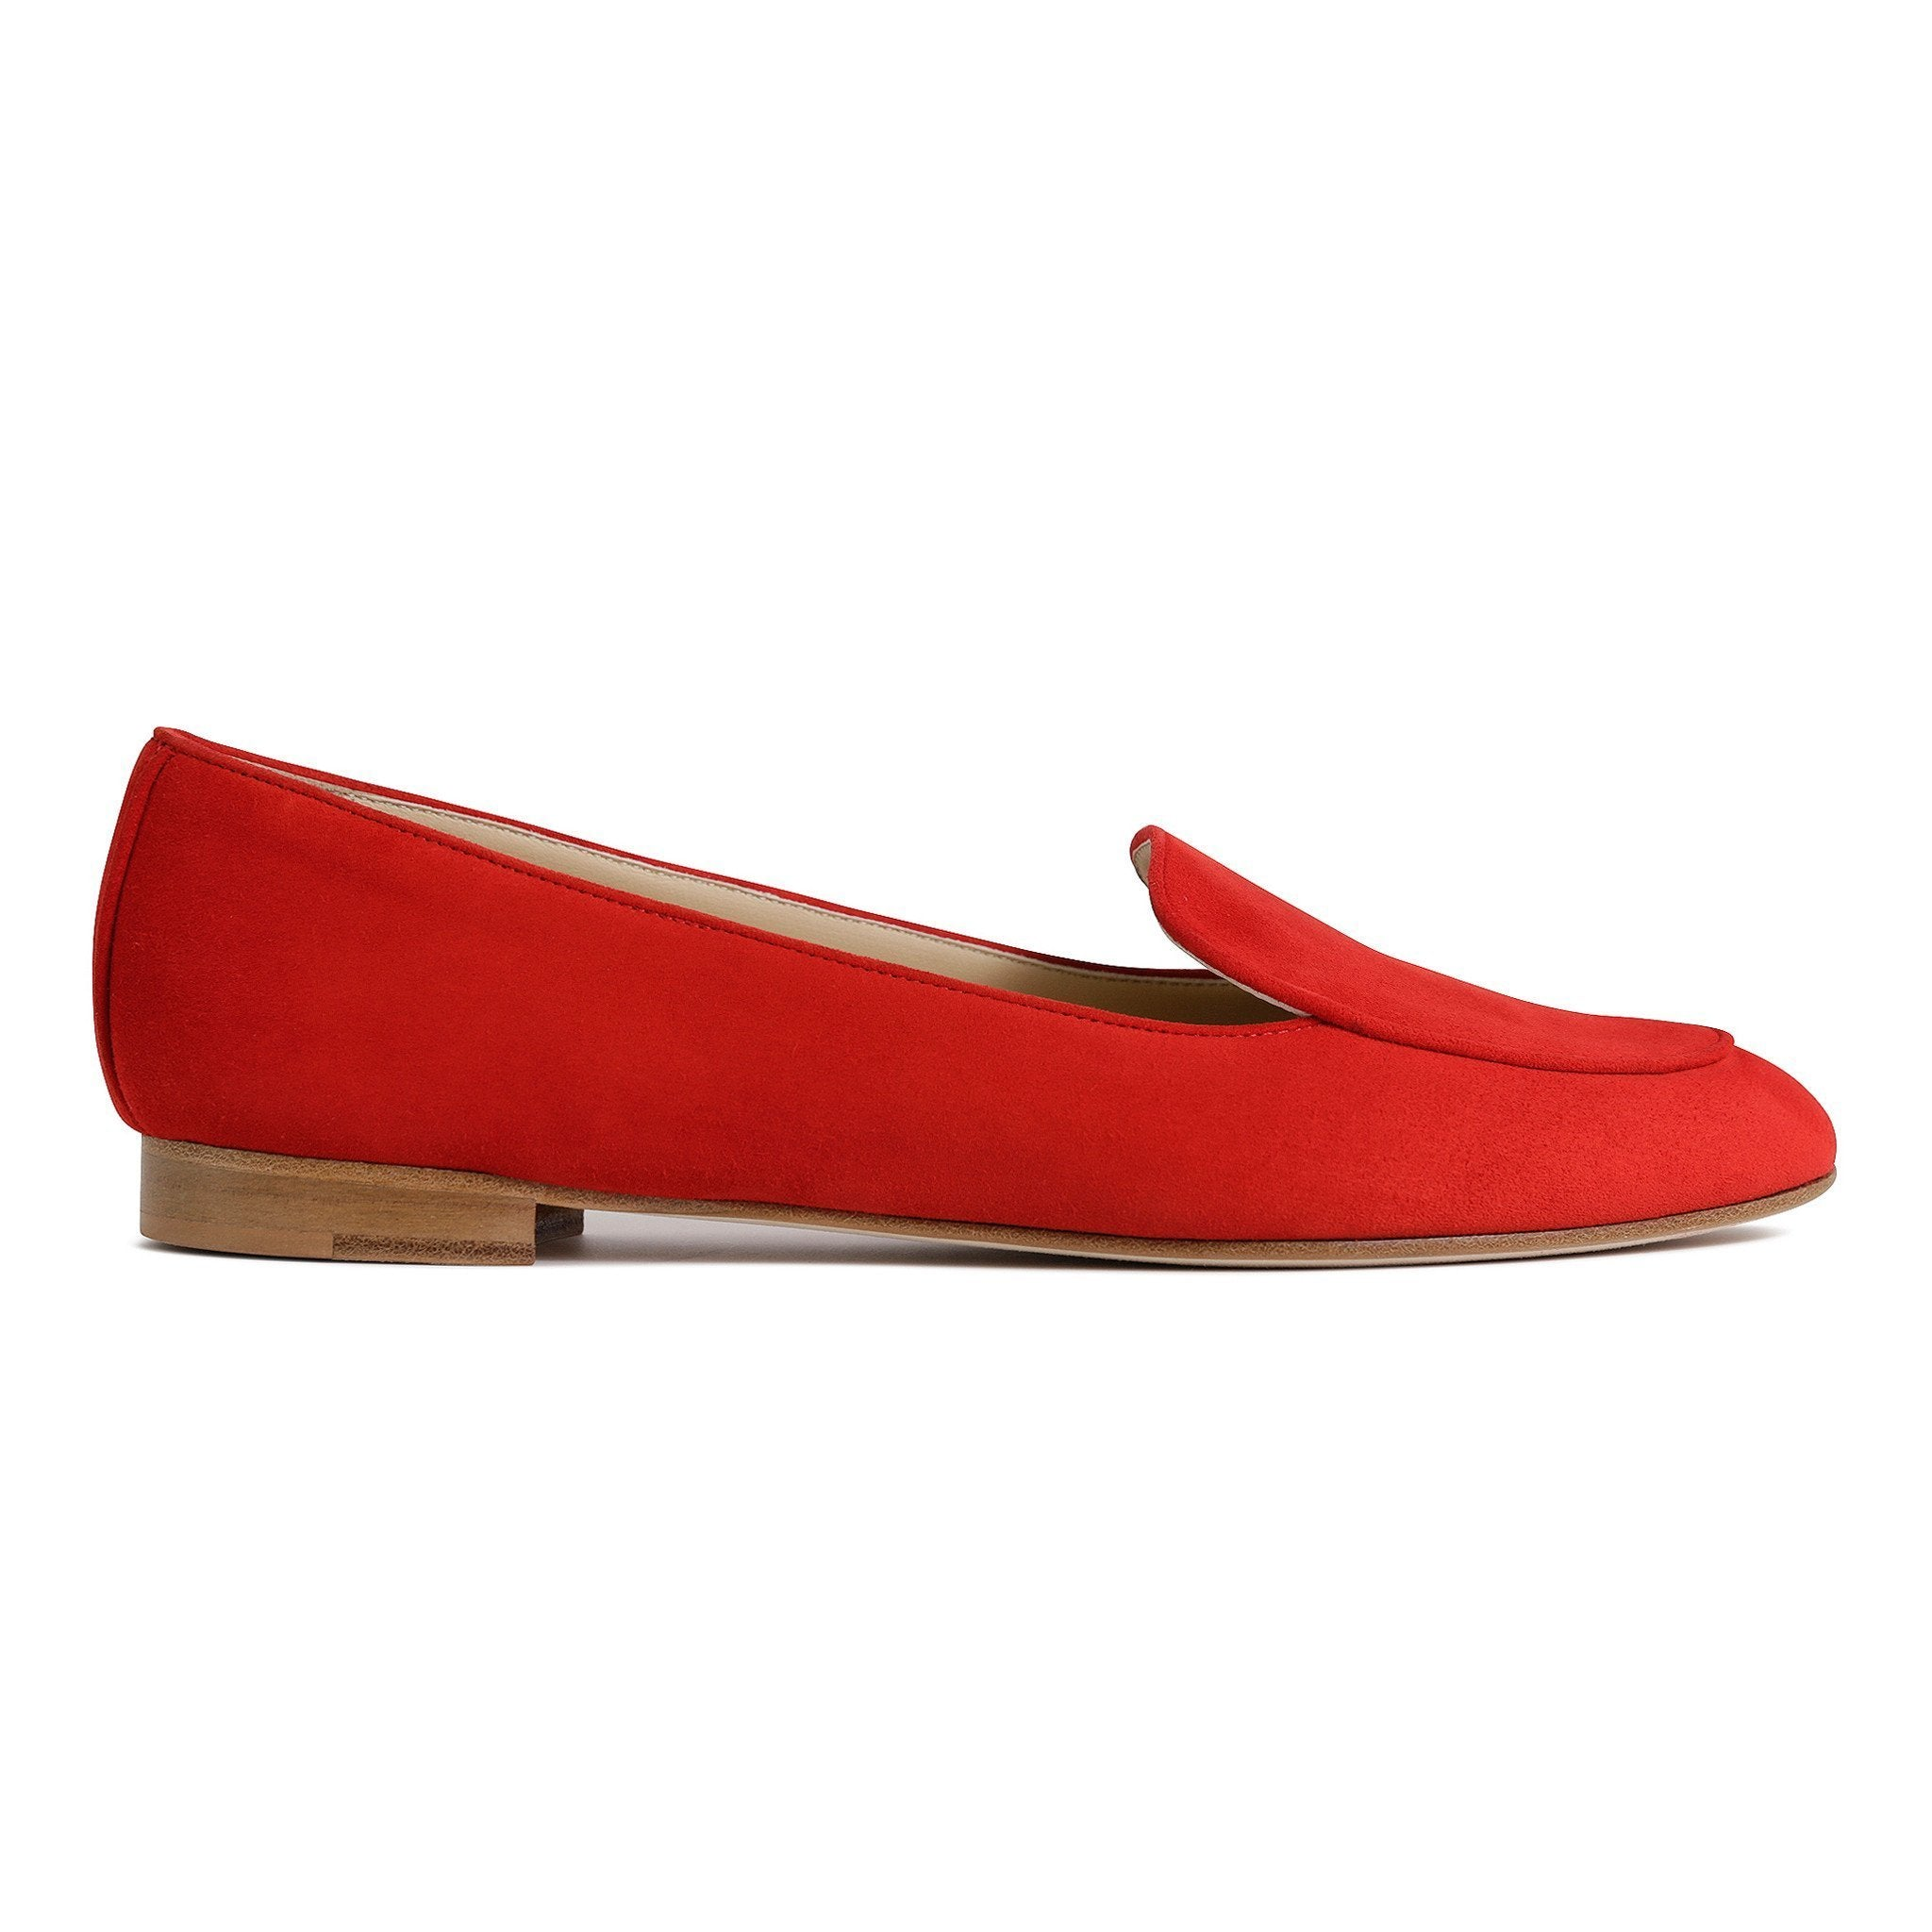 REGGIO - Velukid Rosso, VIAJIYU - Women's Hand Made Sustainable Luxury Shoes. Made in Italy. Made to Order.